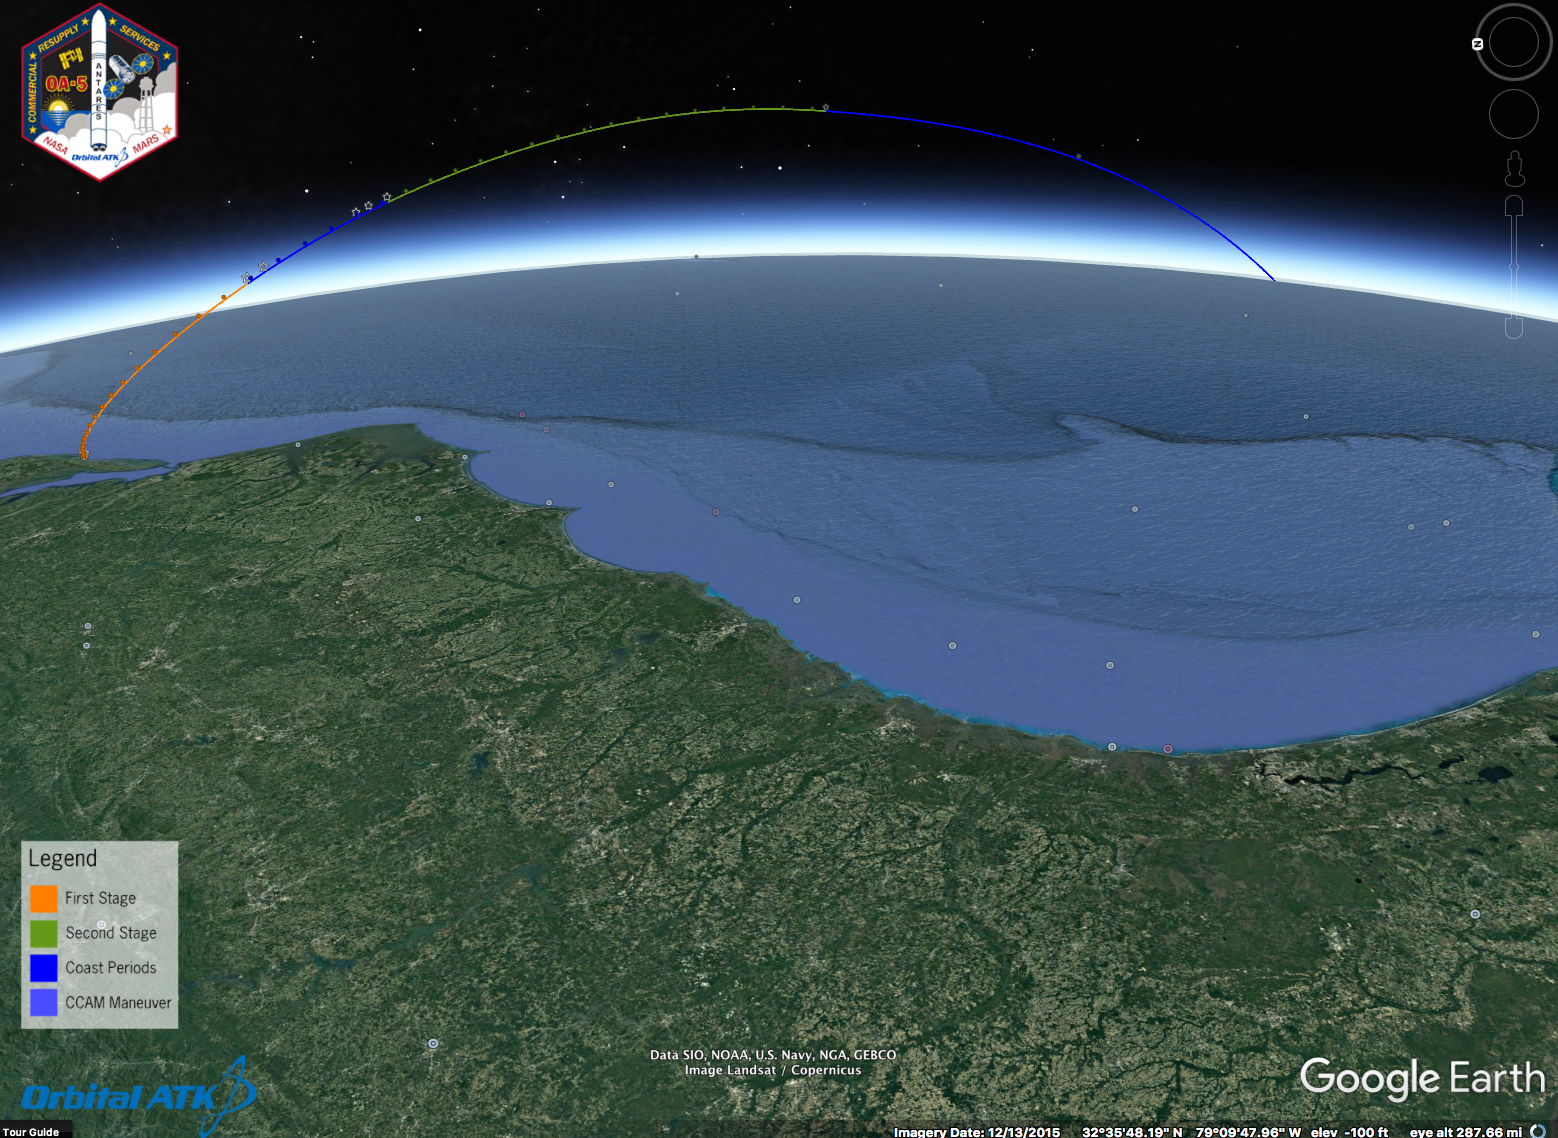 Google Earth Pro 2018-01-05 08-17-29.png